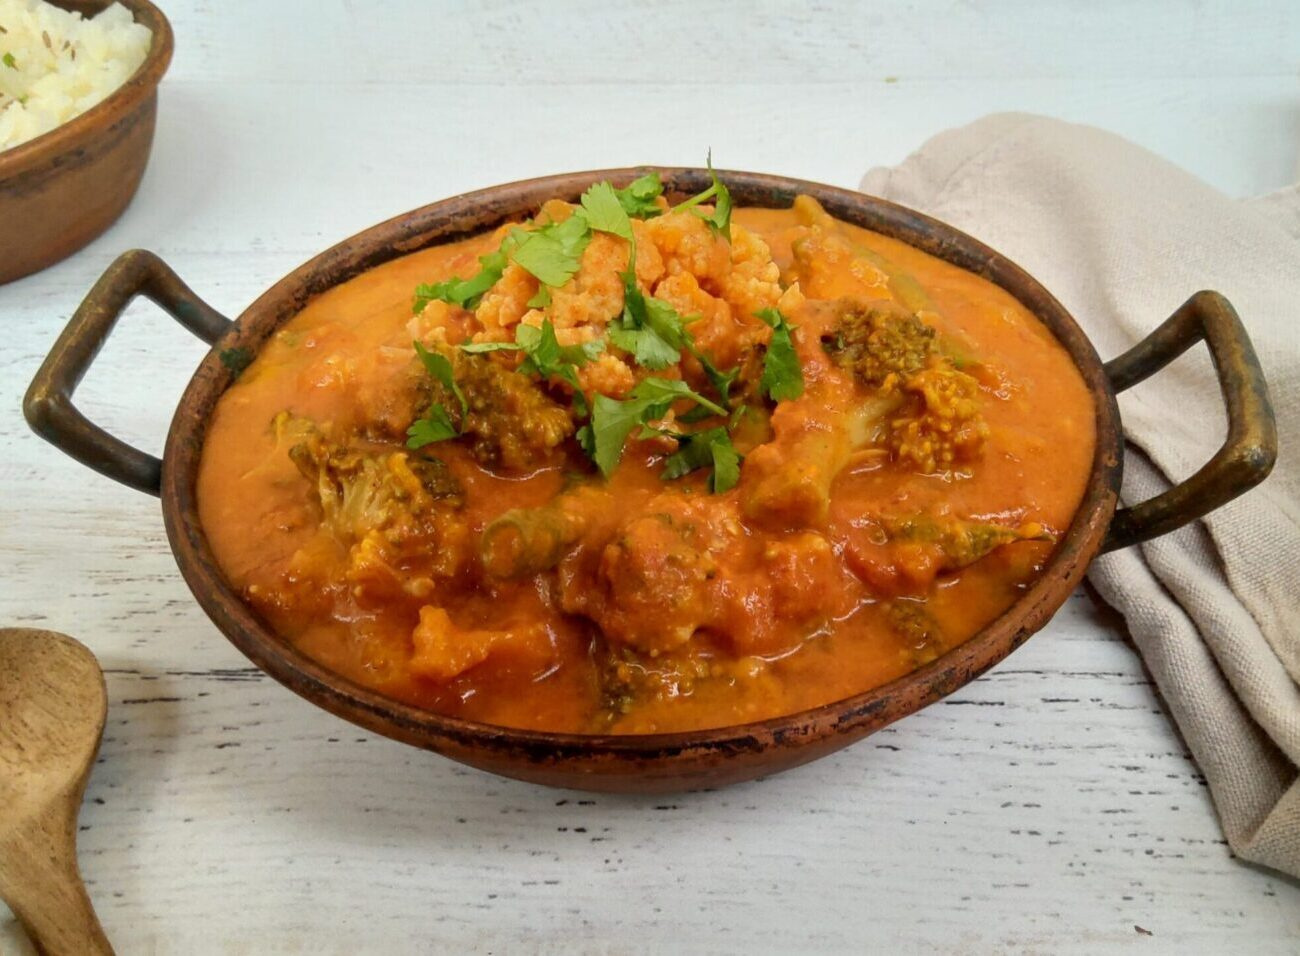 Bowl of vegetable curry